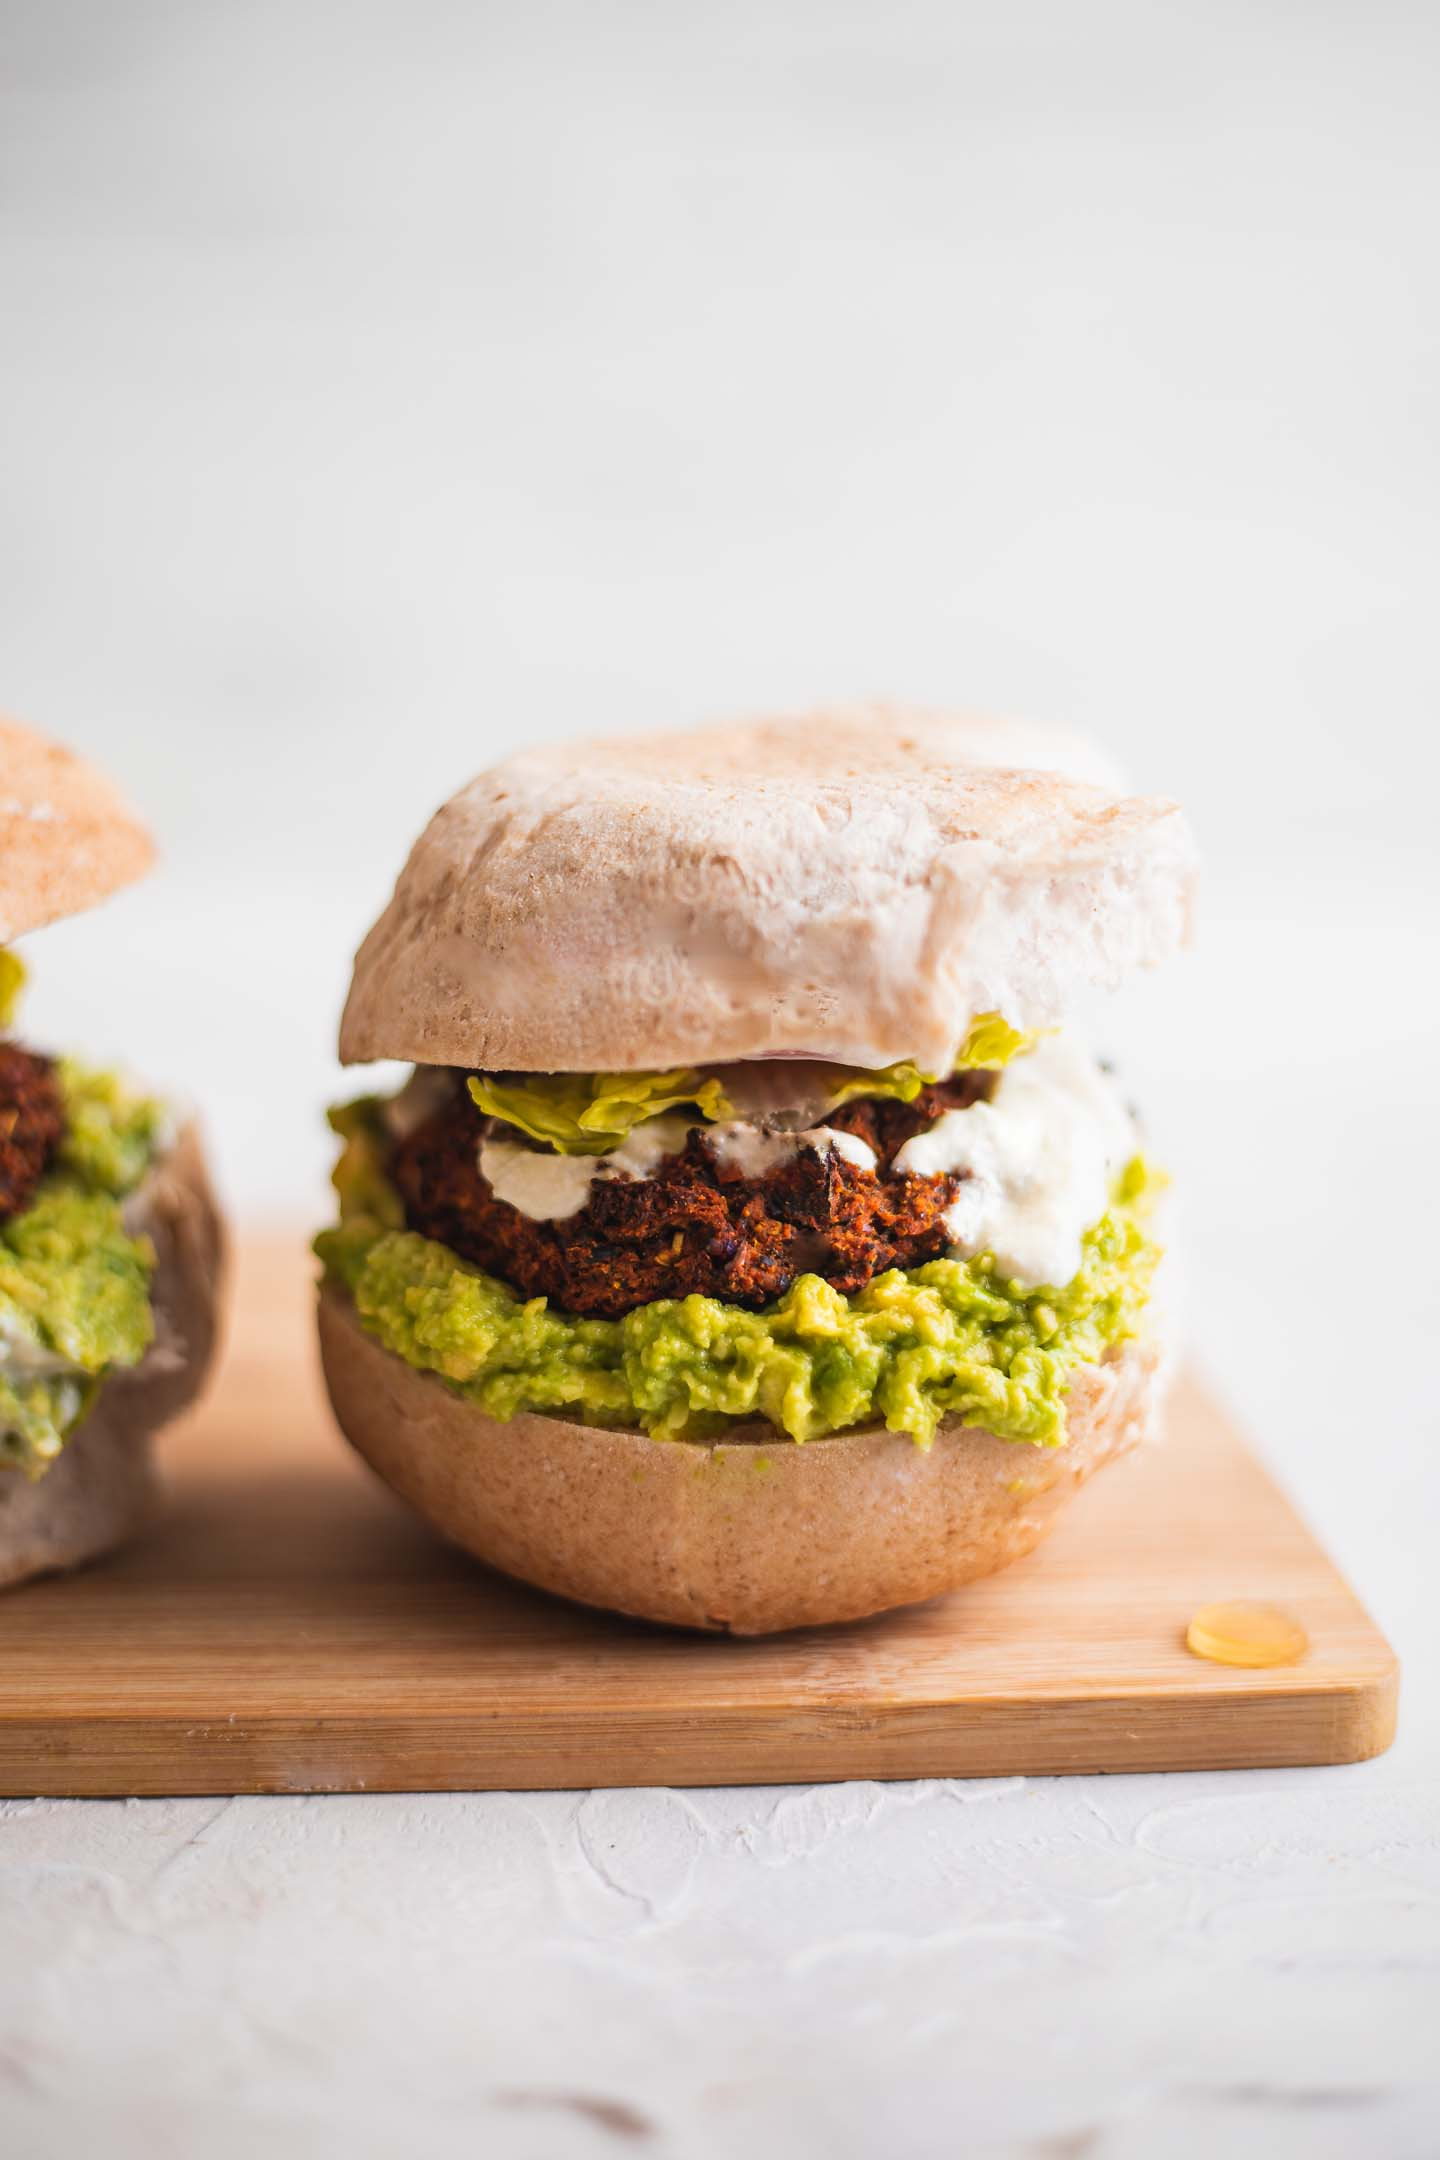 Vegan burger with avocado and lettuce